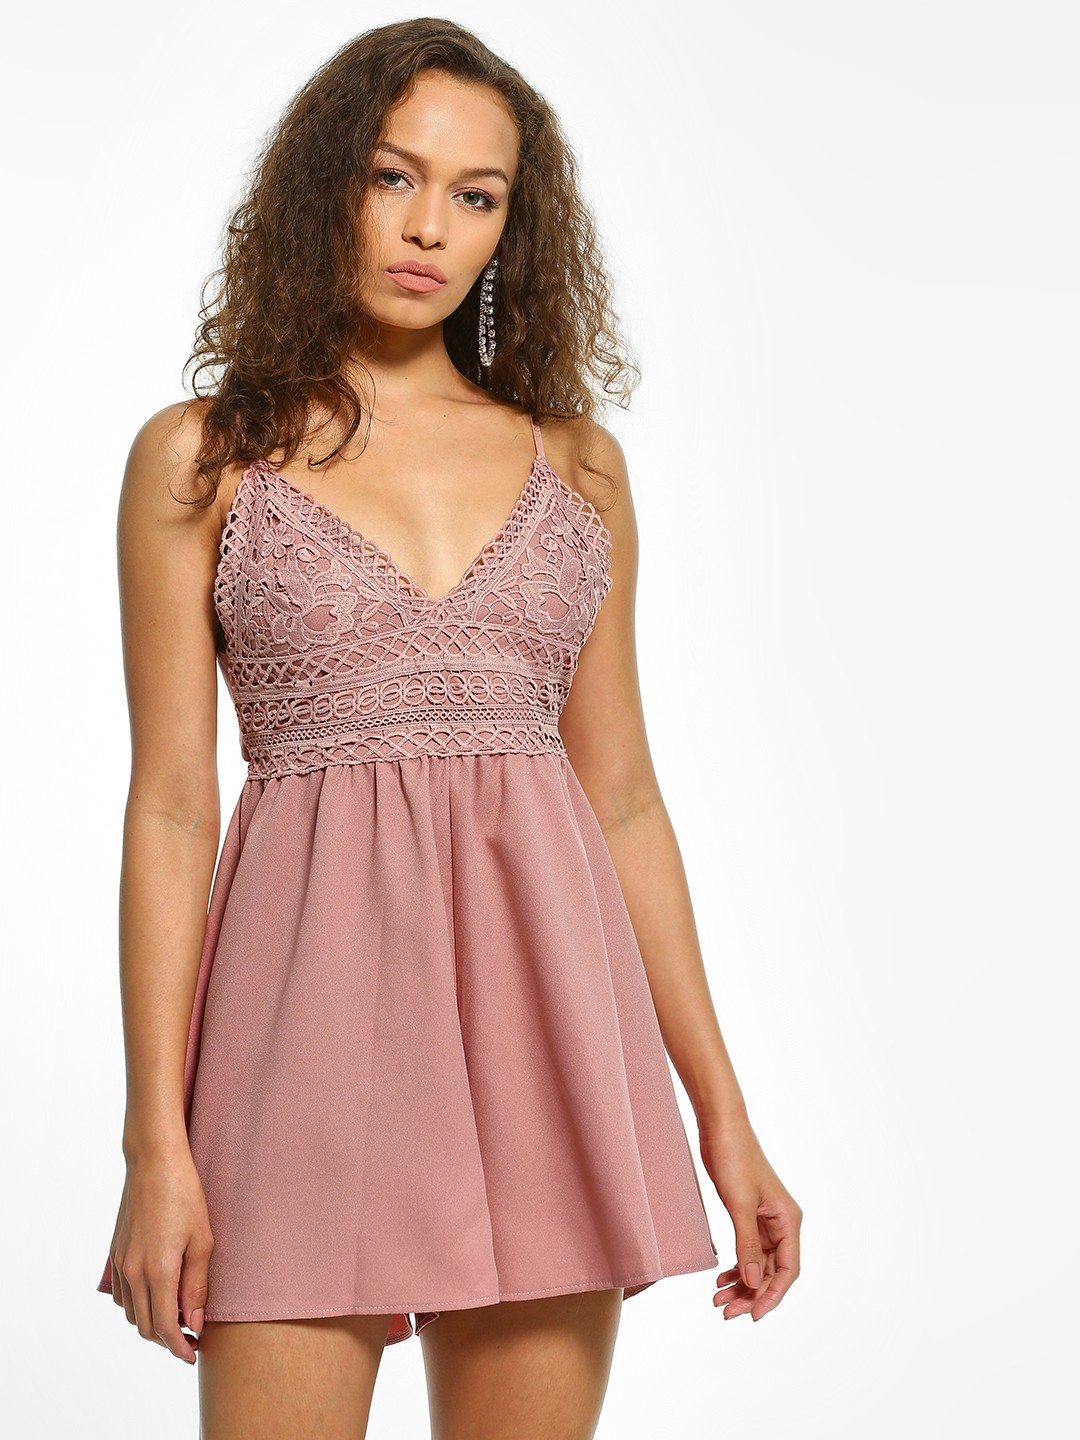 EmmaCloth Pink Crochet Lace Back Bow-Tie Playsuit 1